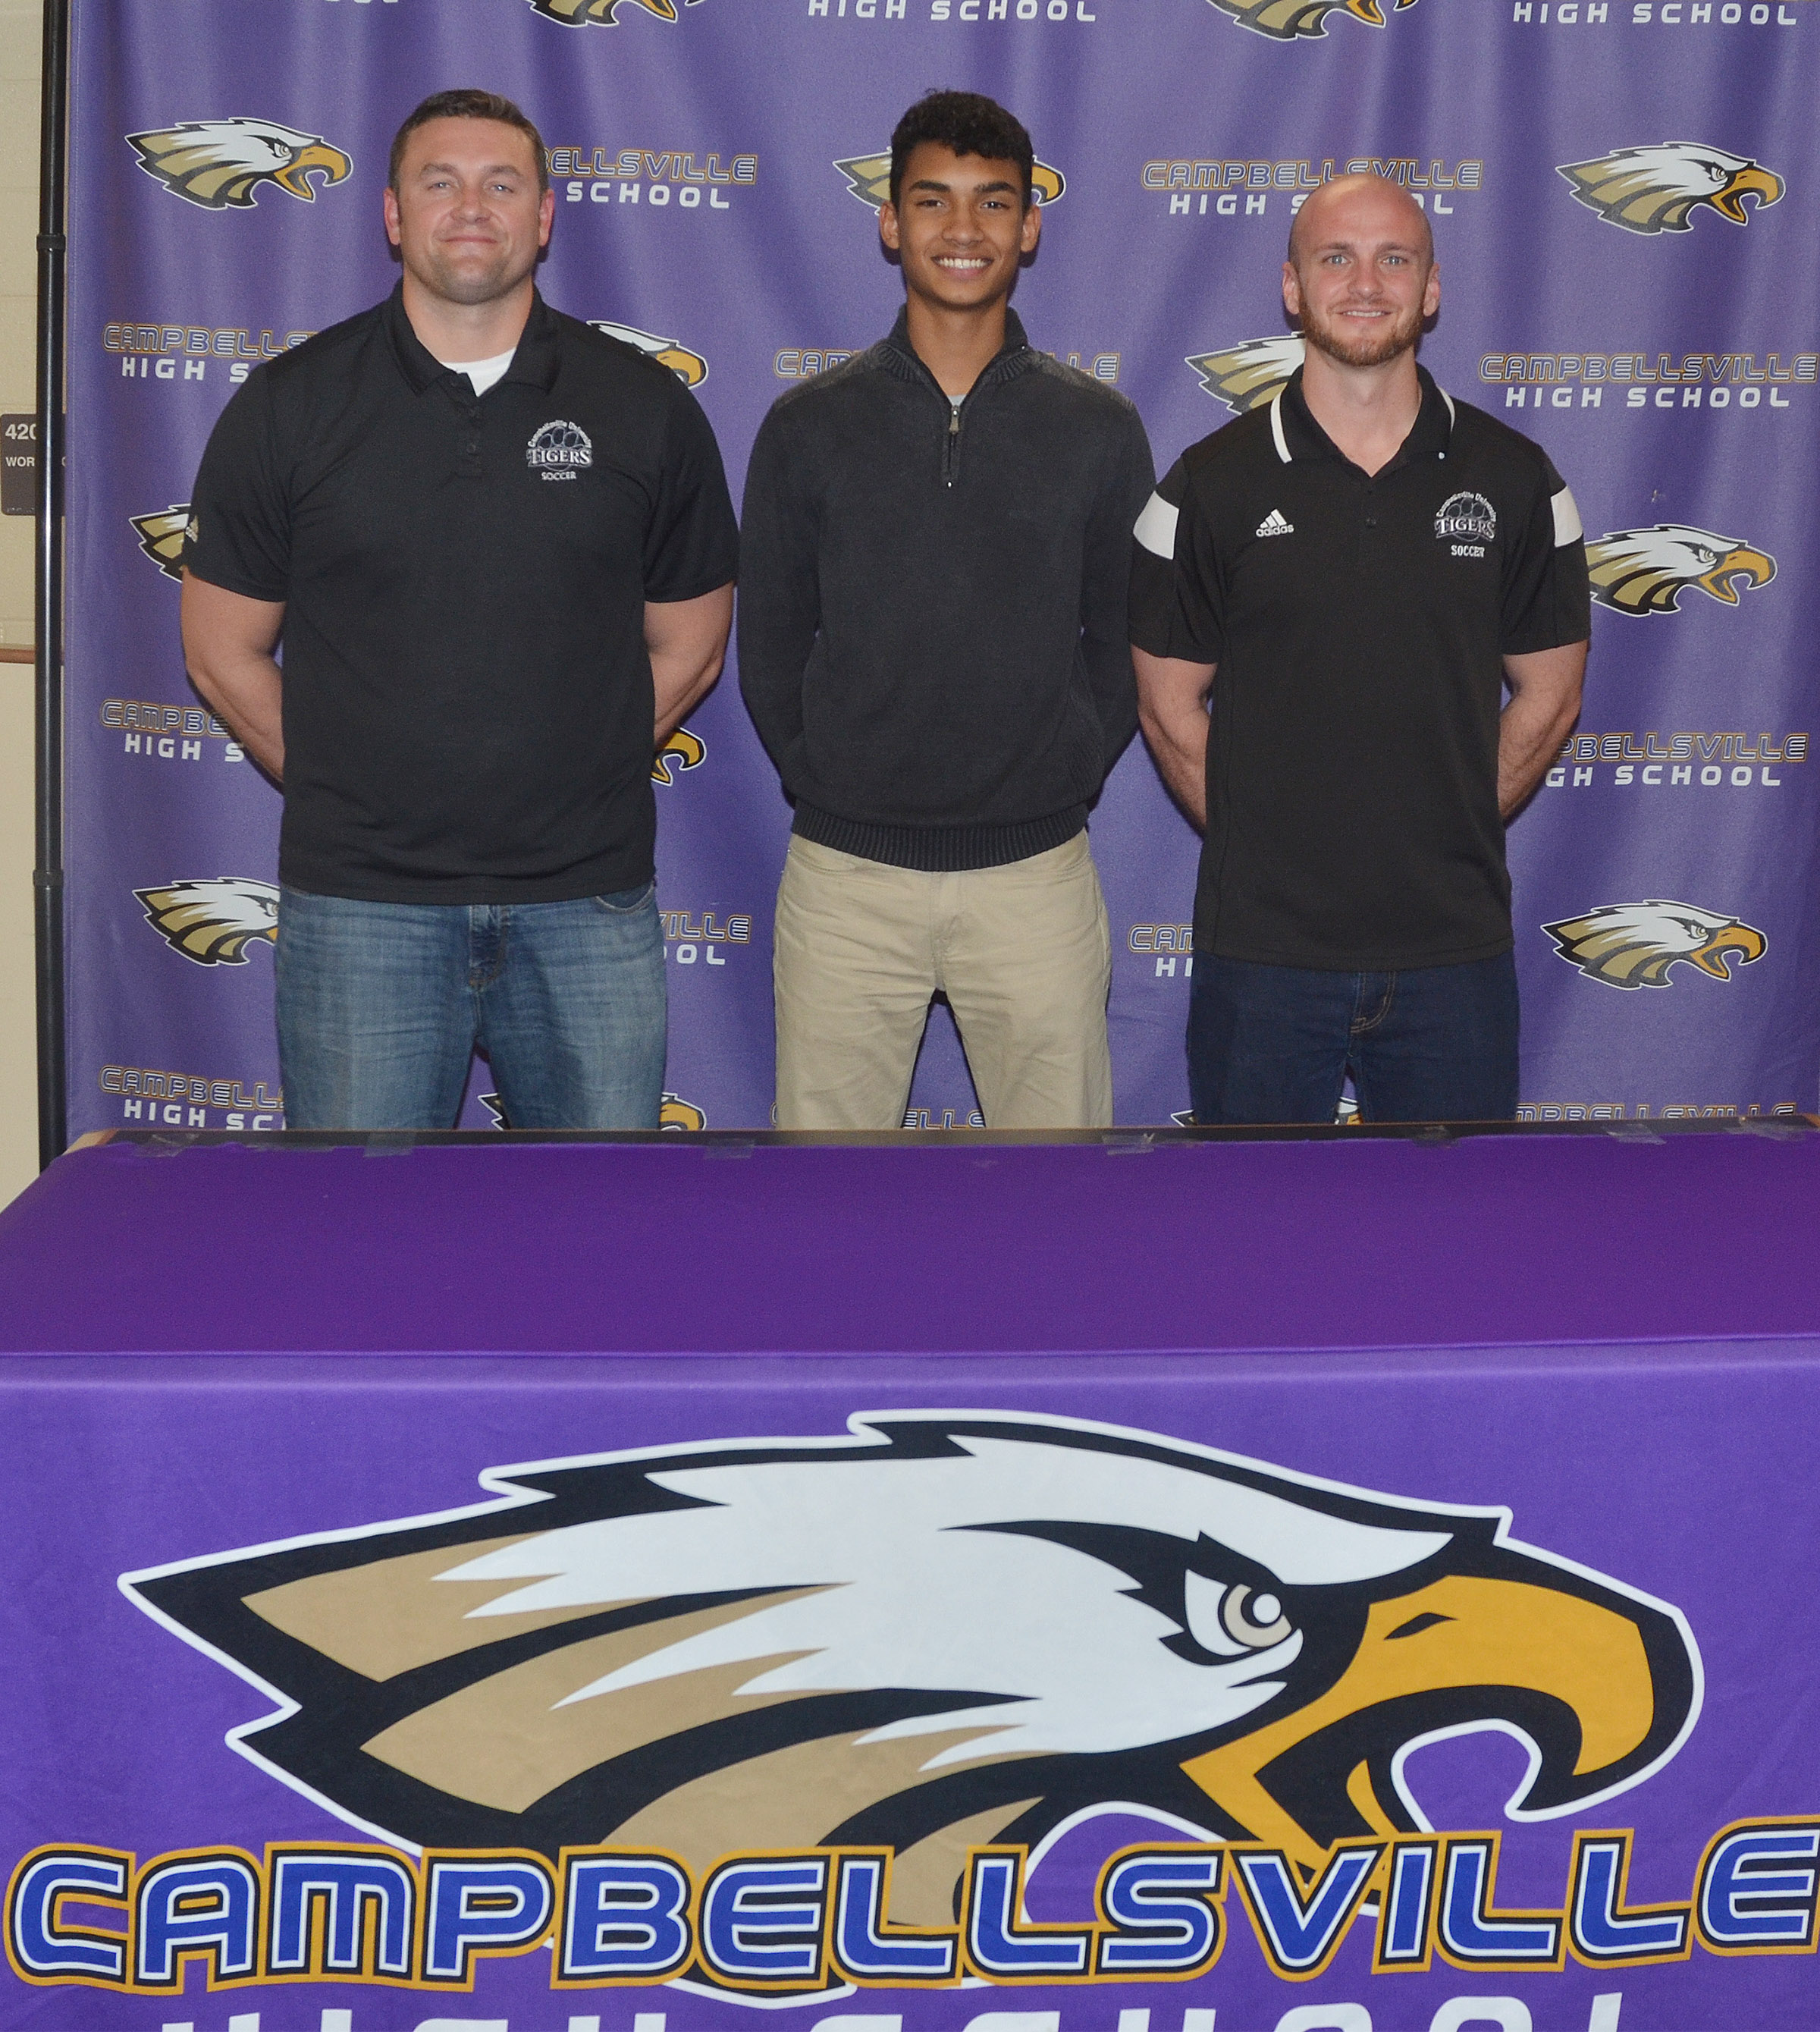 Campbellsville High School soccer player Daniel Silva will continue his academic and athletic career at Campbellsville University. Silva recently signed his letter of intent in a special ceremony with friends, family members, classmates and teammates. From left are CU head soccer coach Adam Preston, Silva and assistant coach Alex Adams.